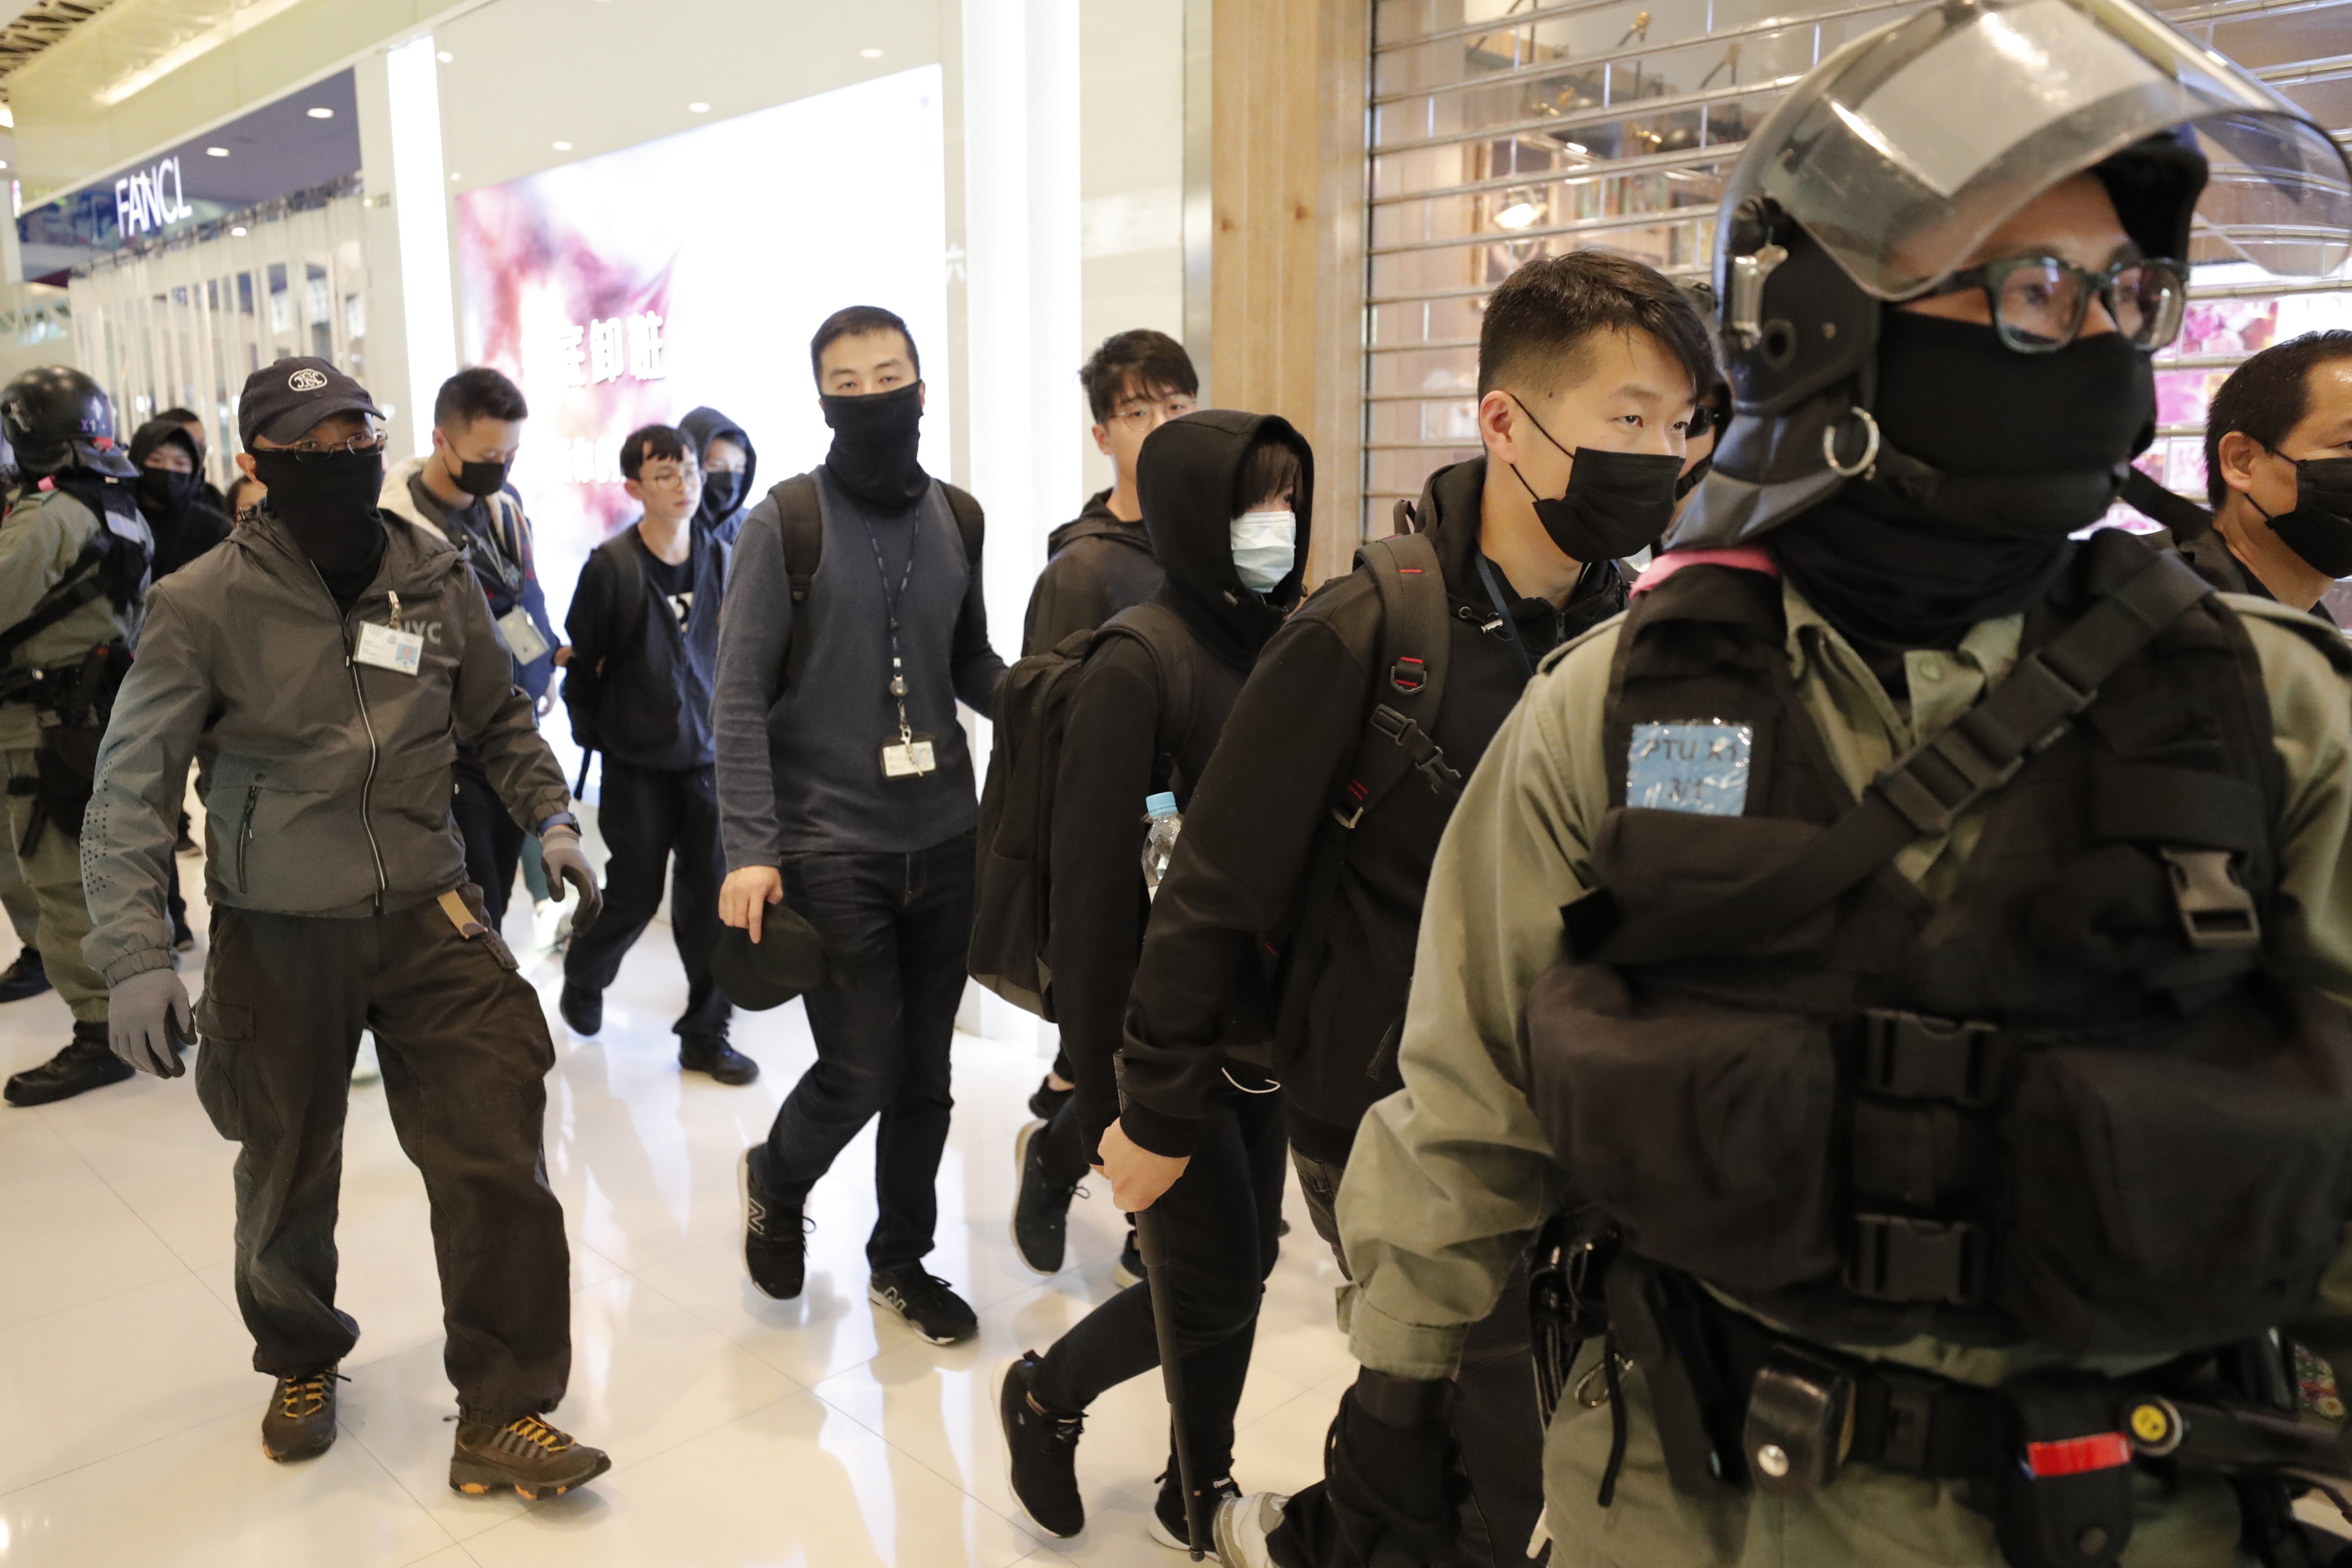 Policemen detain protesters at a shopping mall popular with traders from mainland China near the Chinese border in Hong Kong, Saturday, December 28, 2019